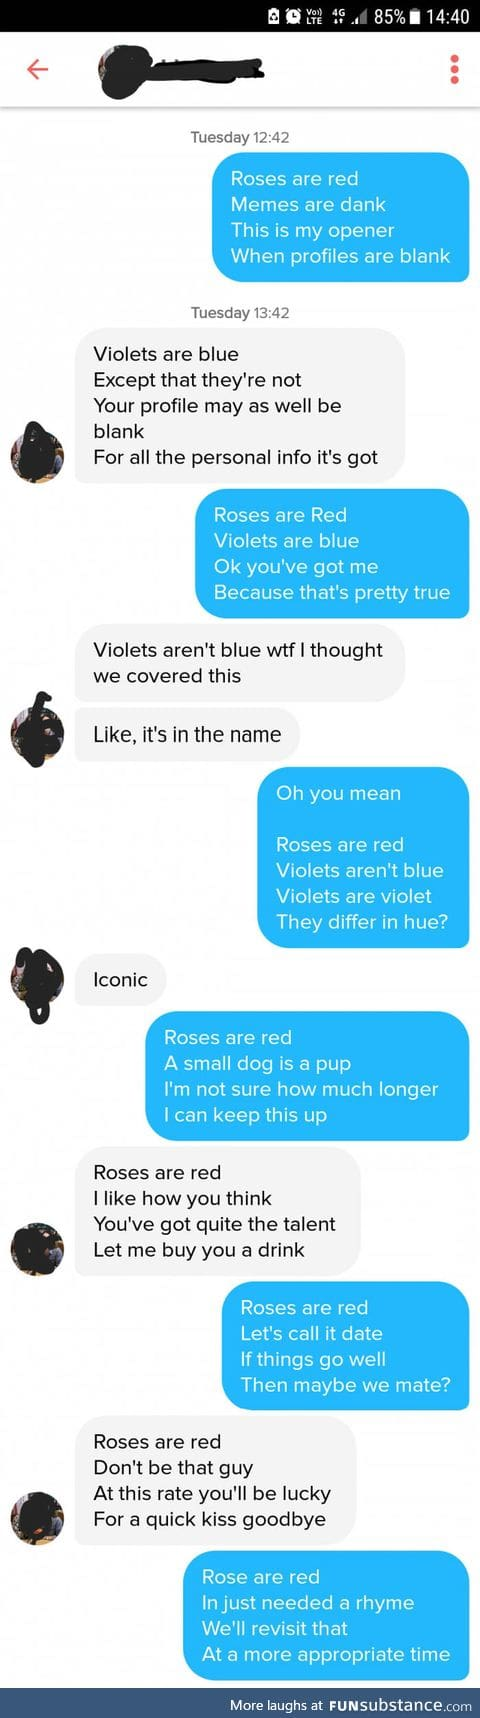 This guy uses poetry to woo a girl on Tinder and it actually worked!